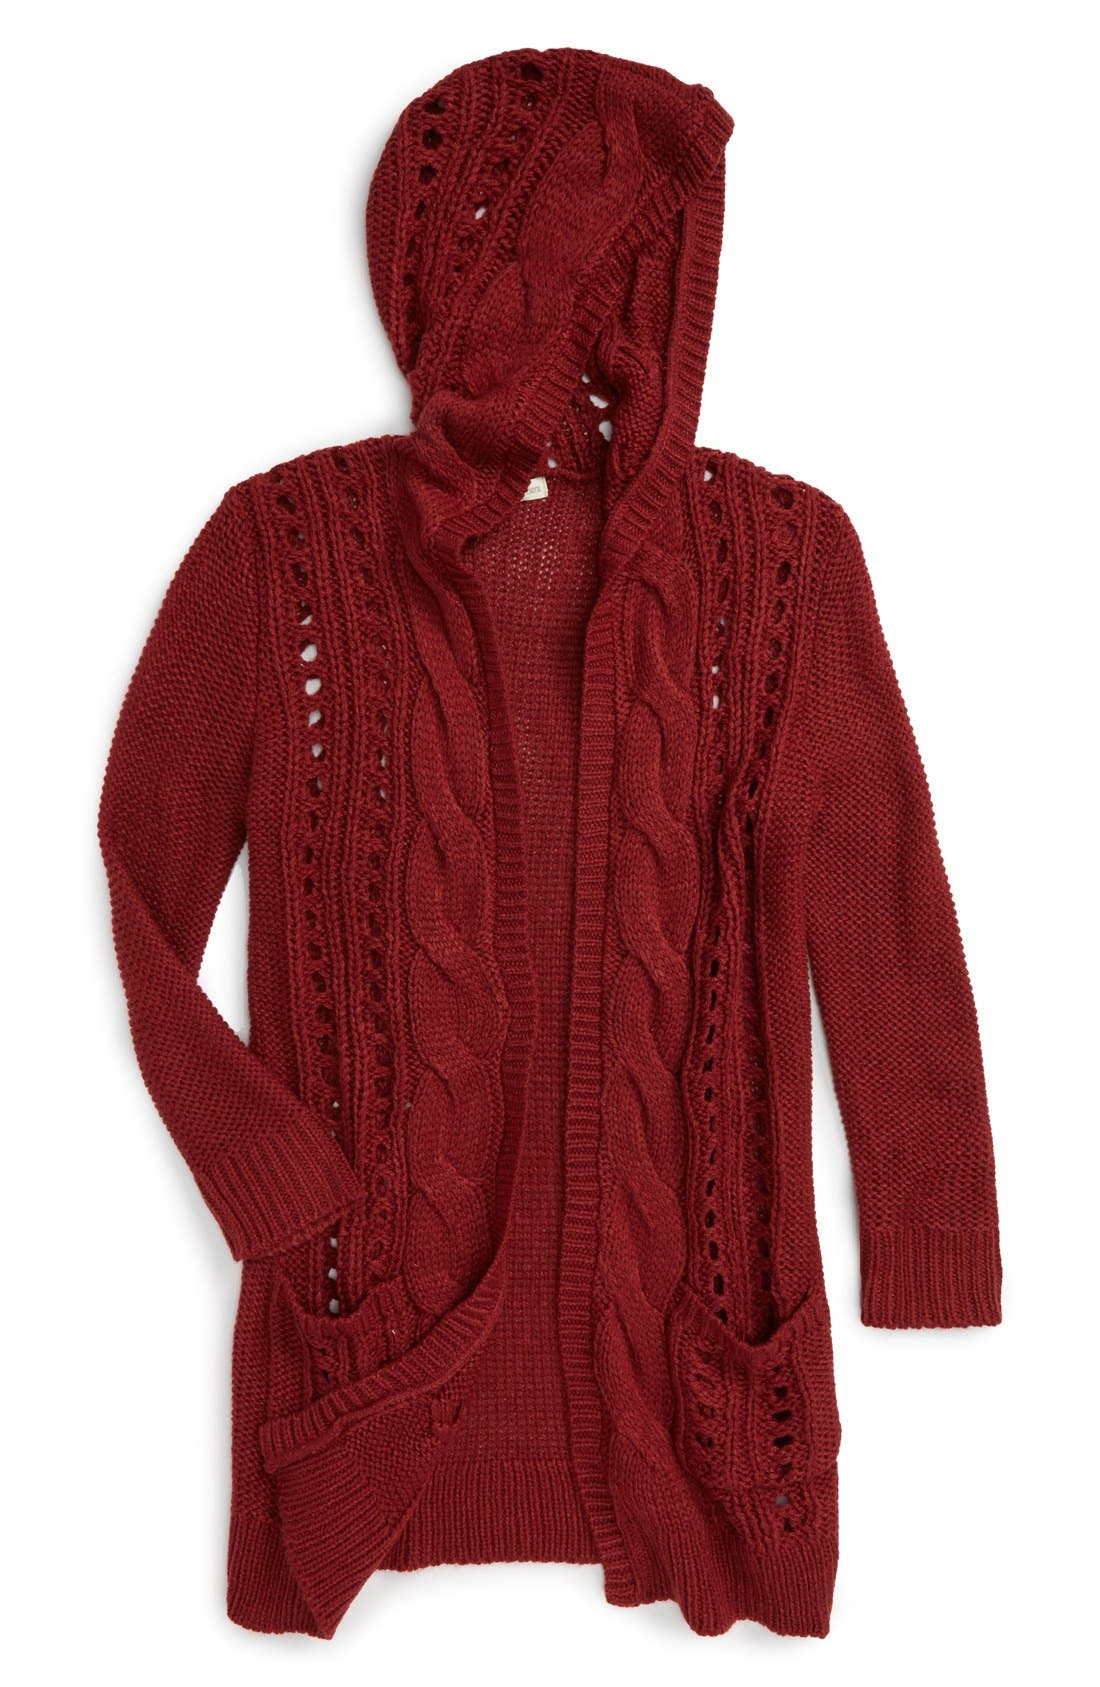 Alternate Image 1 Selected - Tucker + Tate Hooded Cardigan (Big Girls)